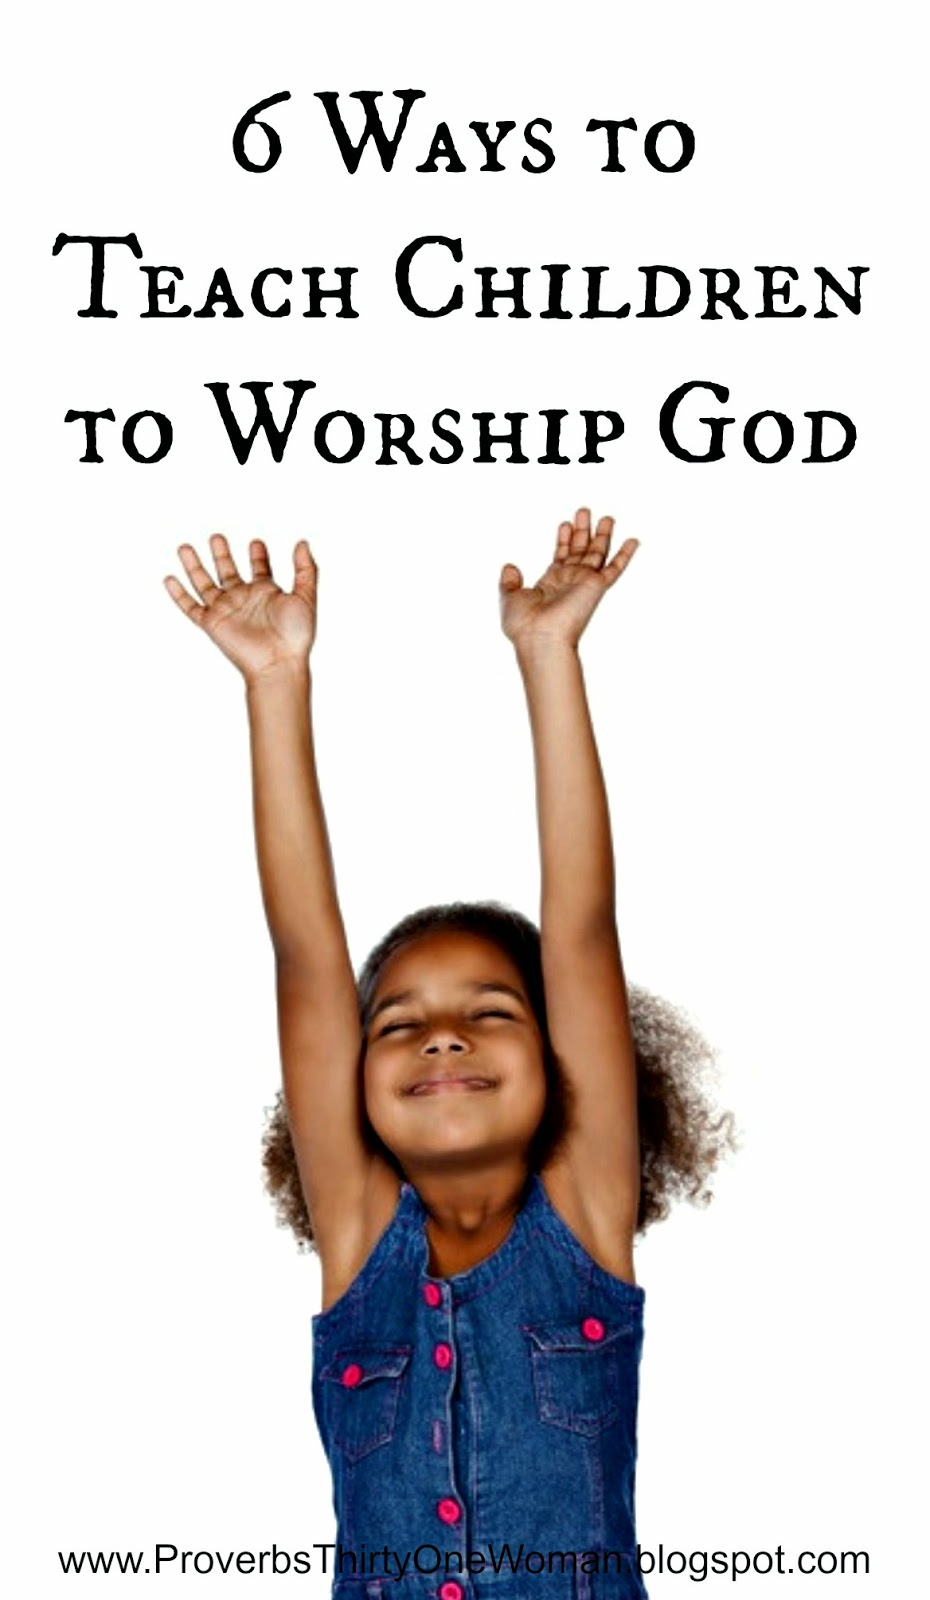 6 Ways To Create A Bohemian California Look No Matter What: 6 Ways To Teach Children To Worship God, Every Day